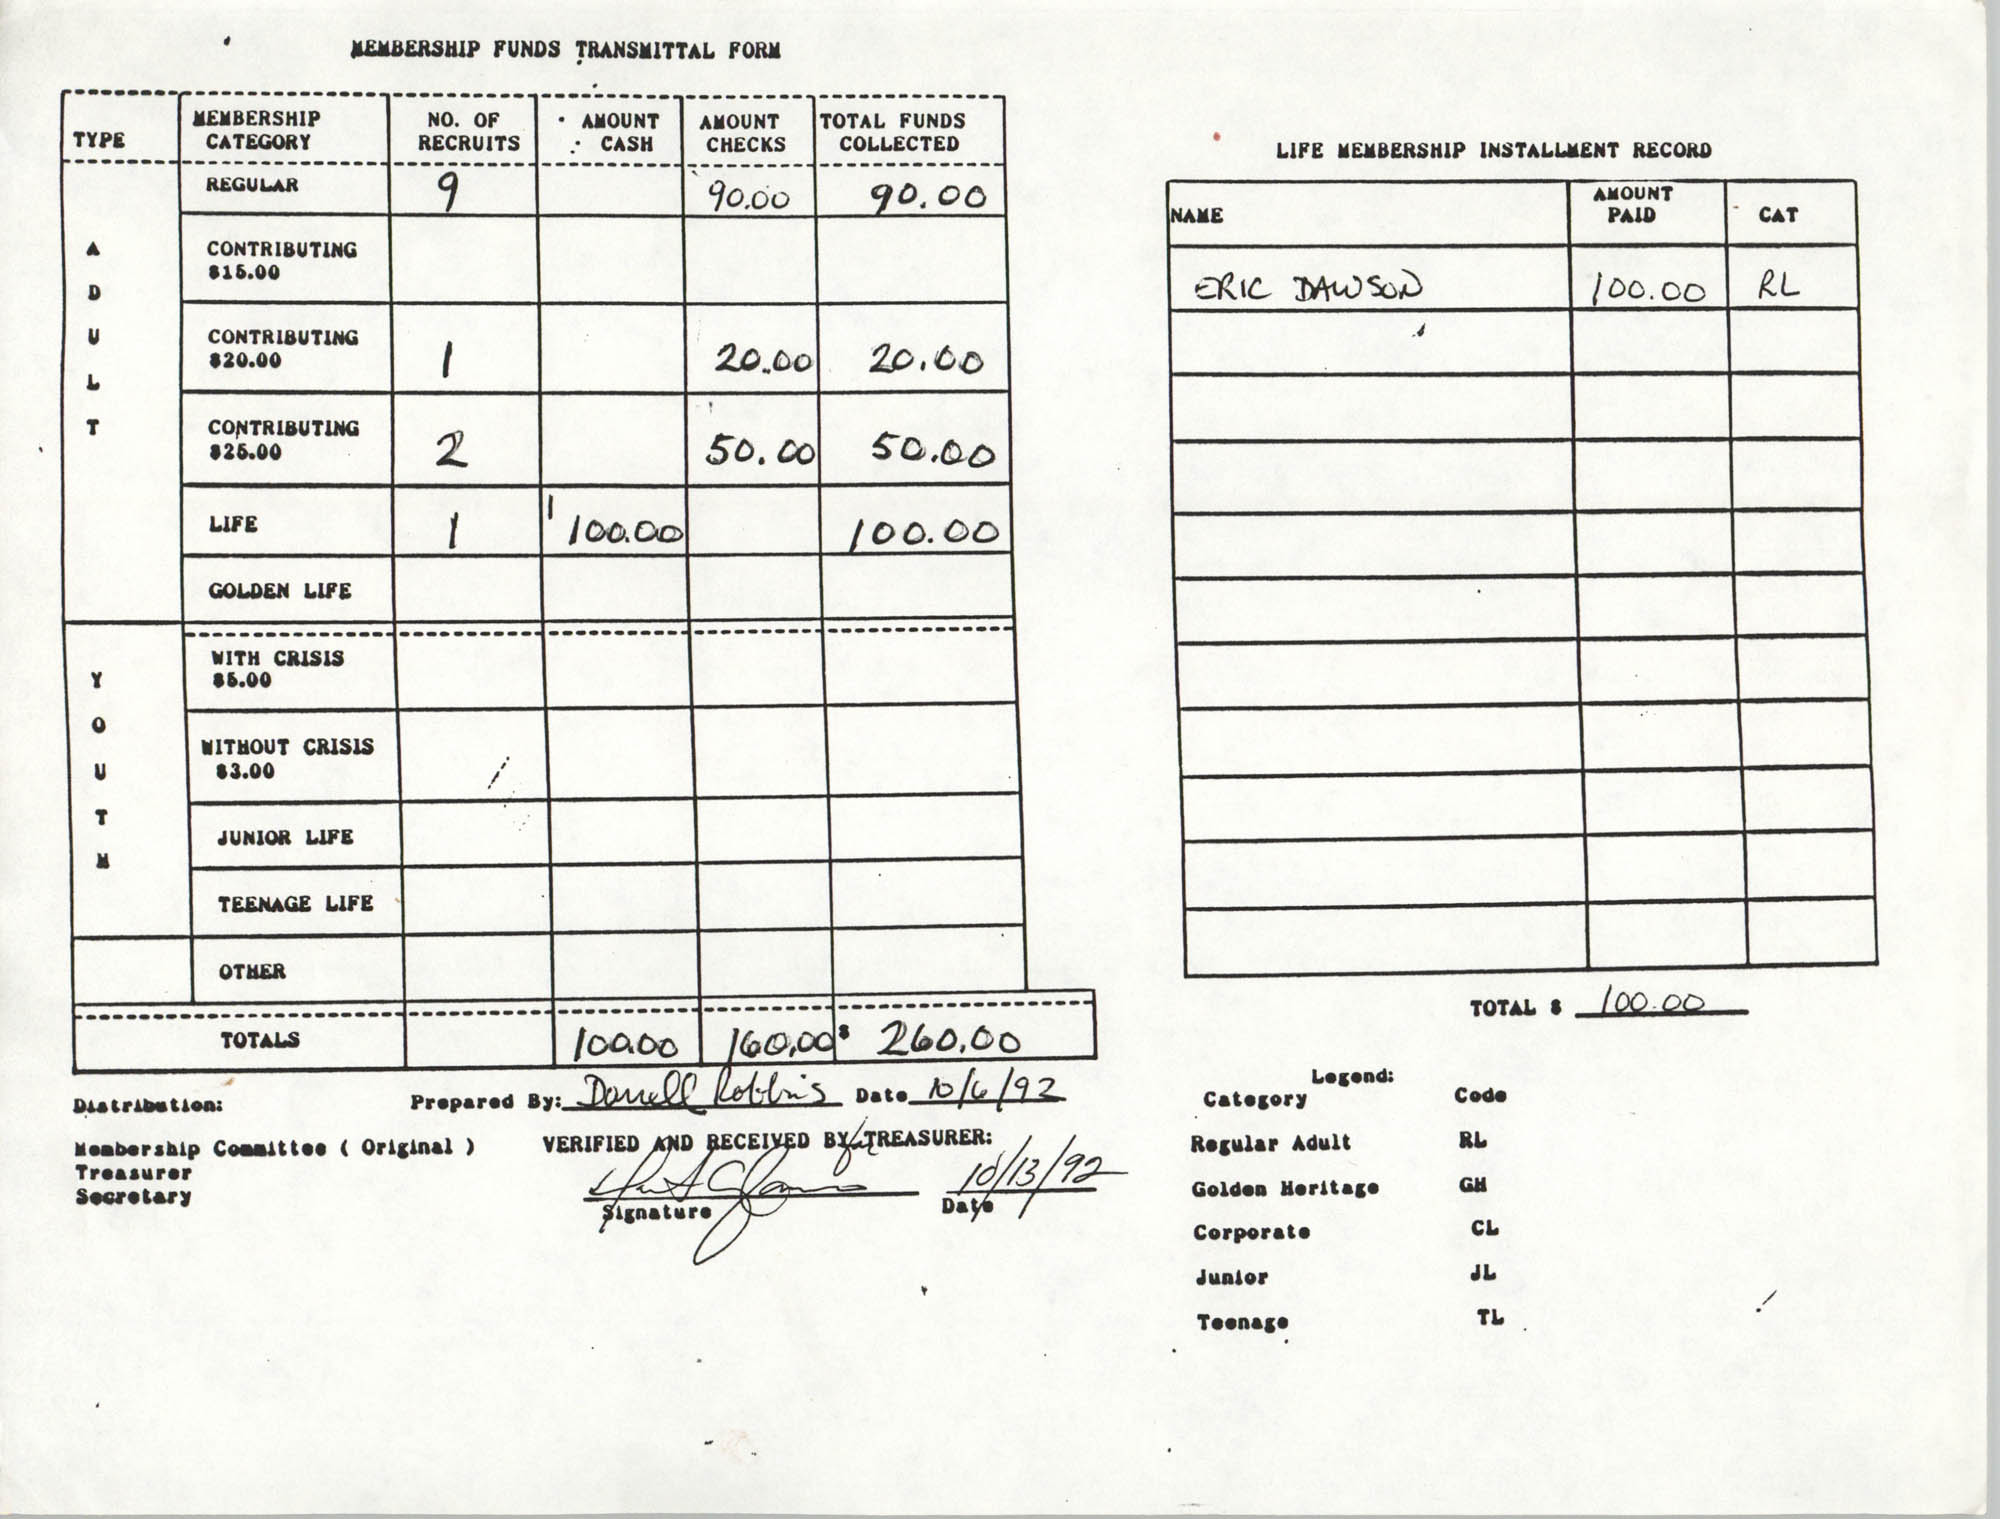 Charleston Branch of the NAACP Funds Transmittal Forms, October 1992, Page 1